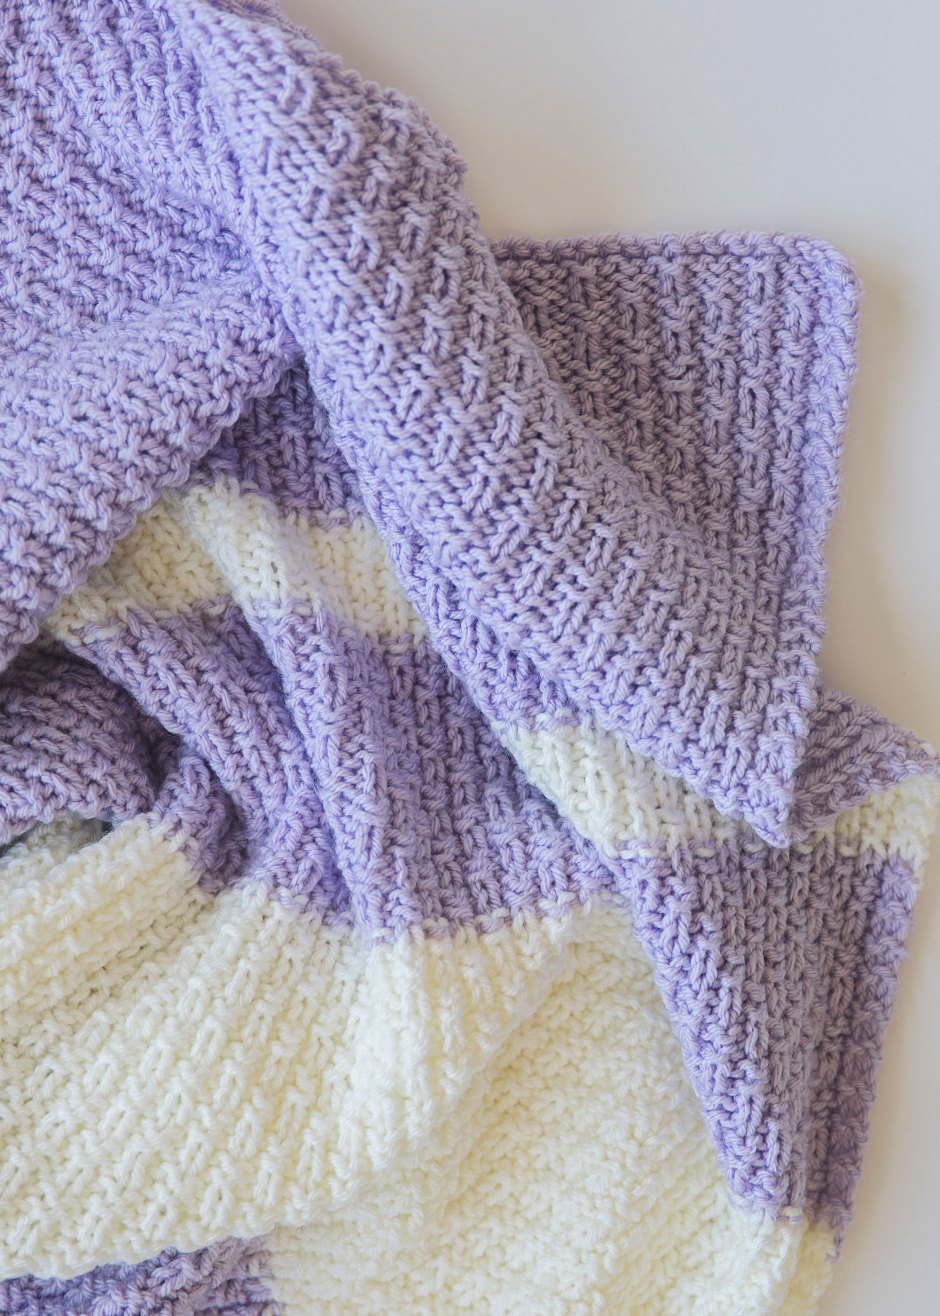 Easy Knit Blanket How To : Easy Knit Baby Blanket Pattern - Leelee KnitsLeelee Knits